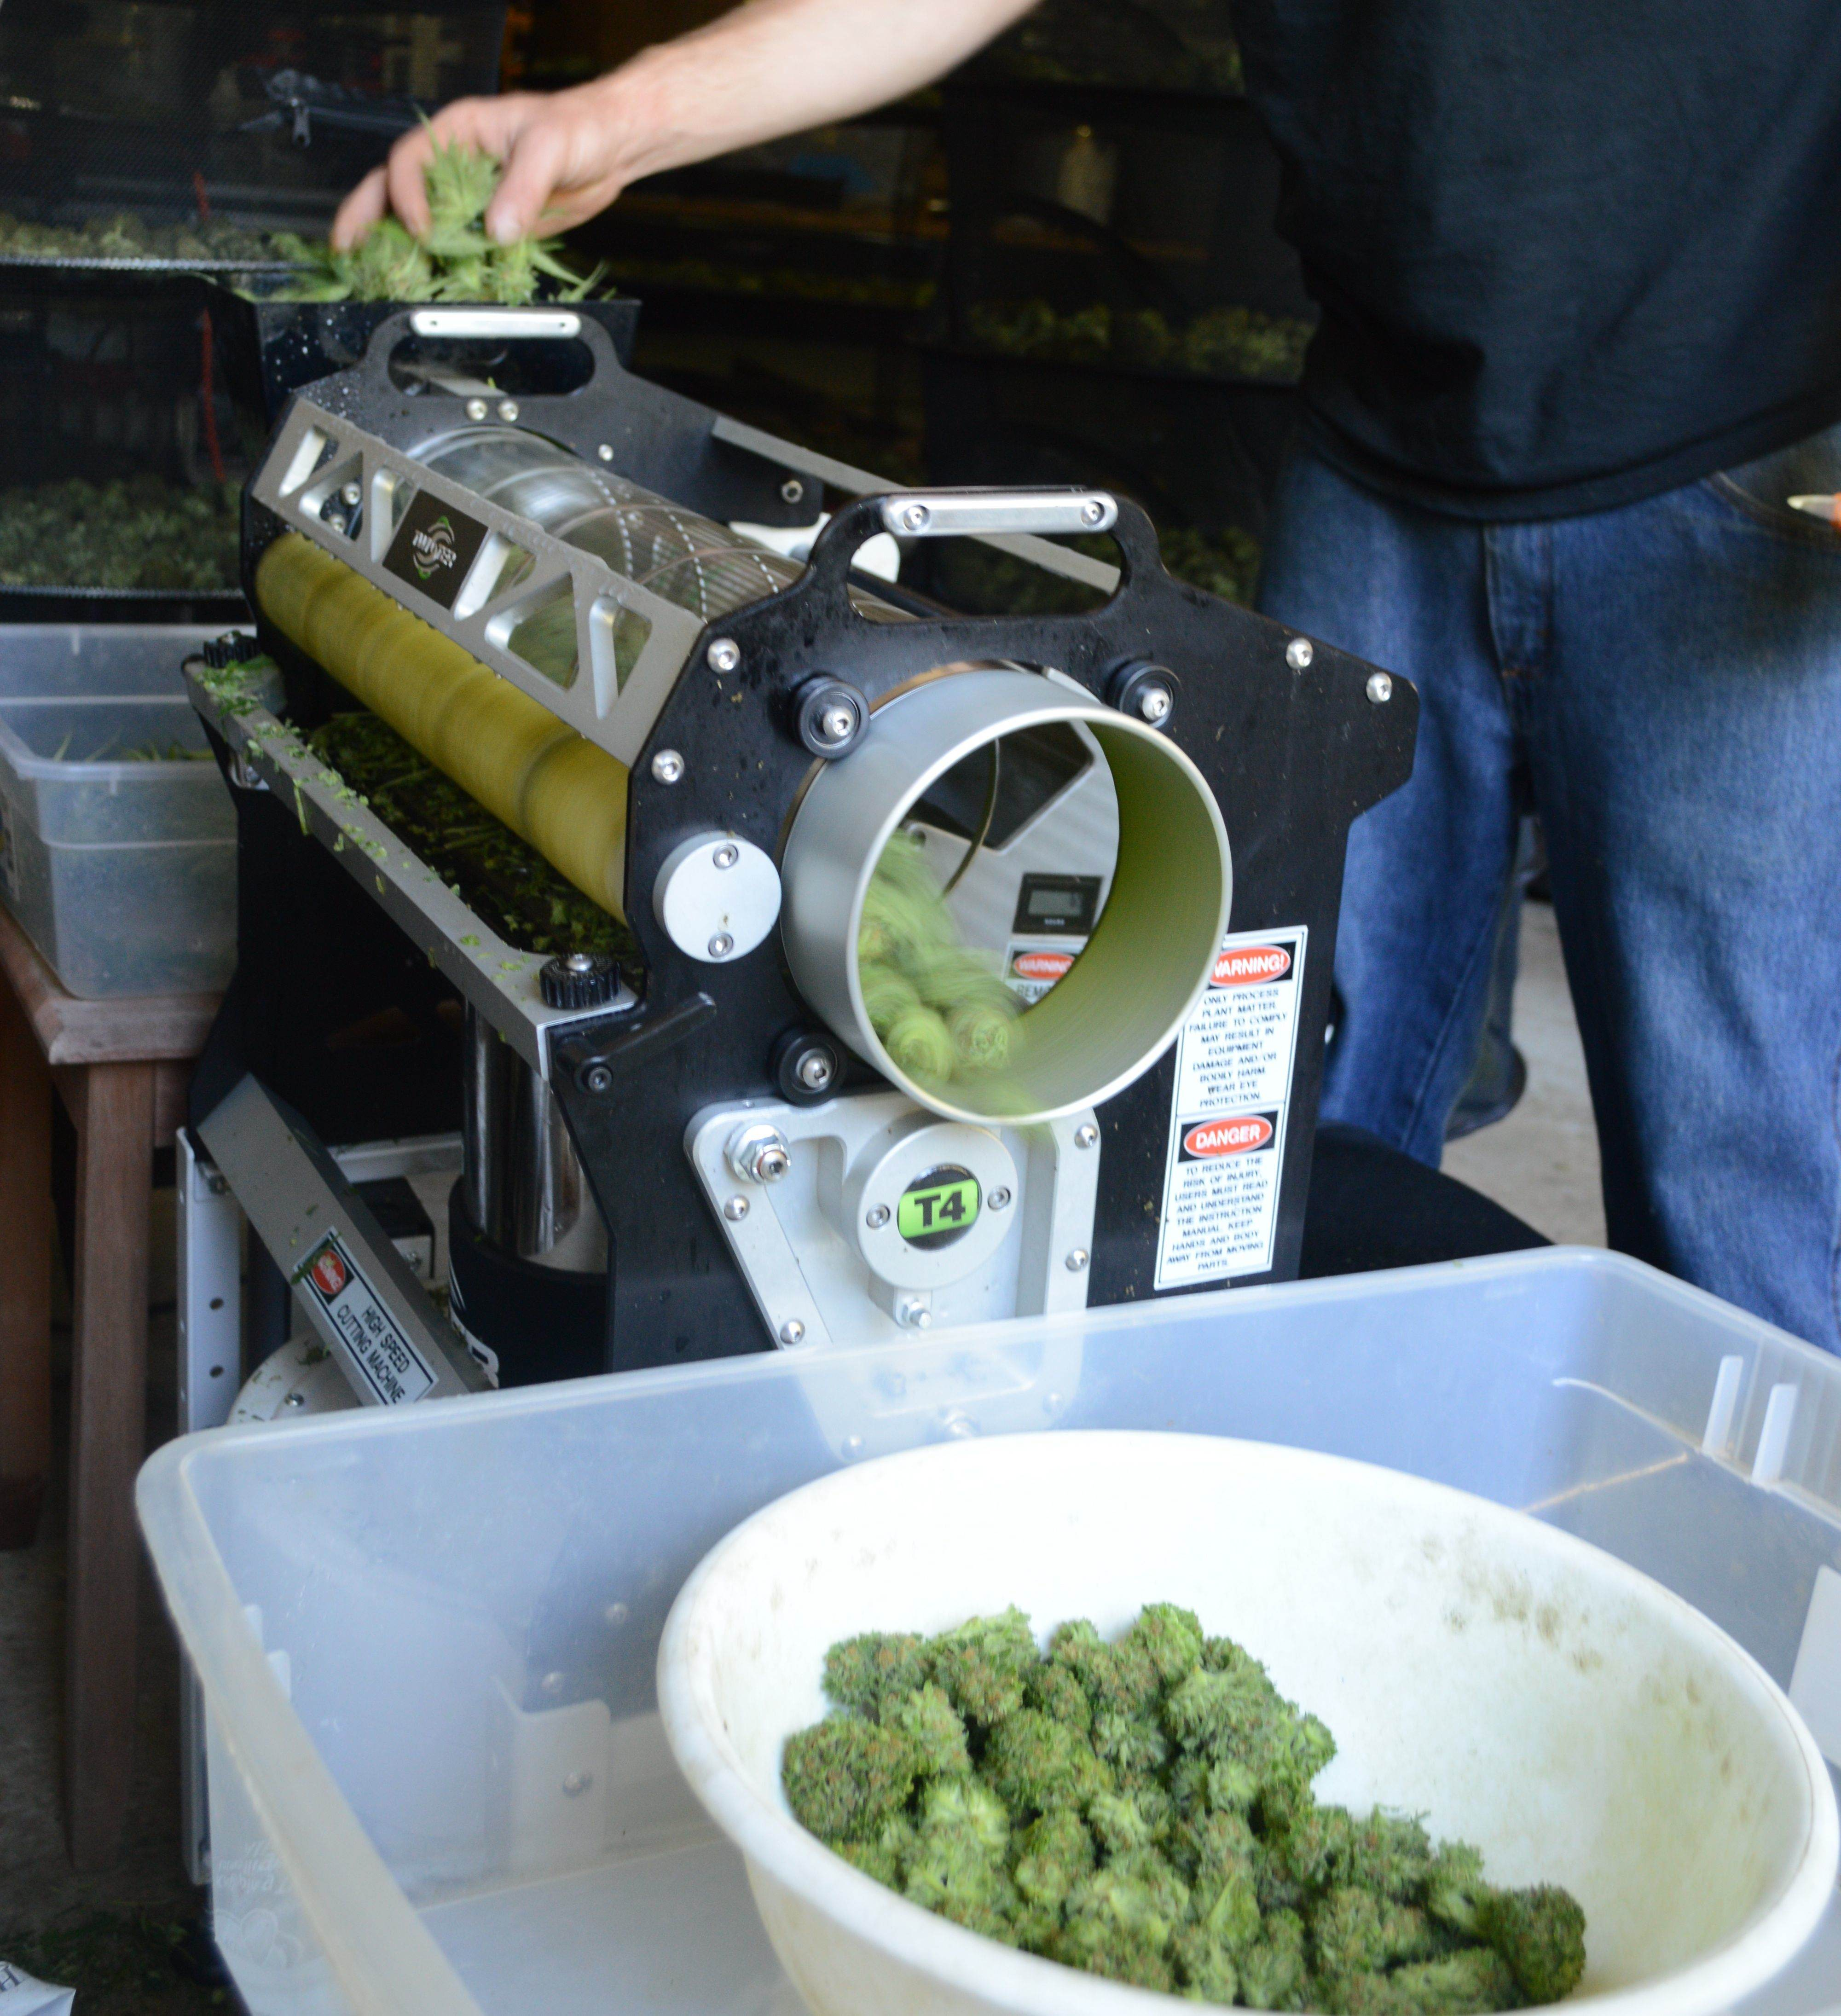 bud trimming machine for sale